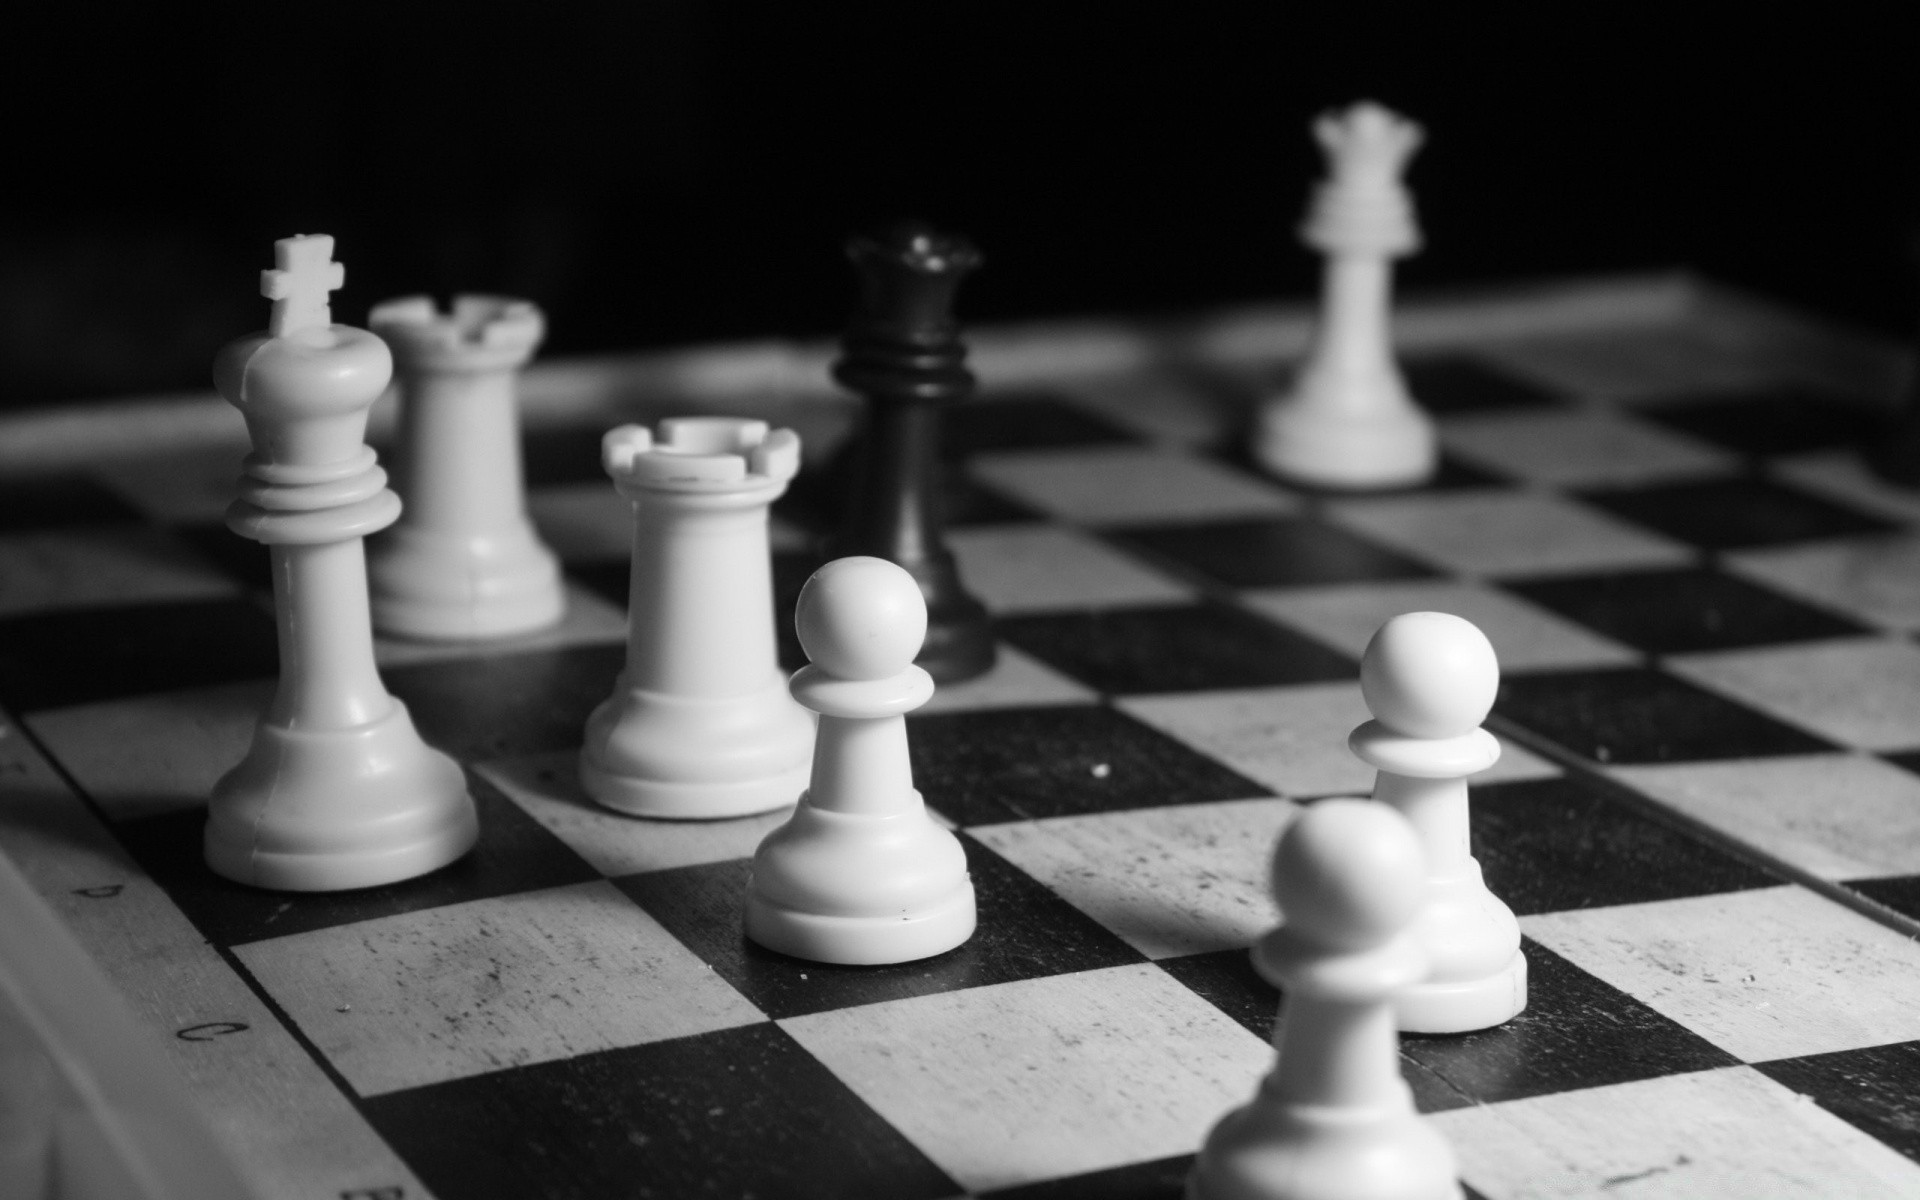 Chess Pawn Strategy Knight Queen Mate Strategic Castle Combat Victory Decision Win Intelligence Board Game Competition